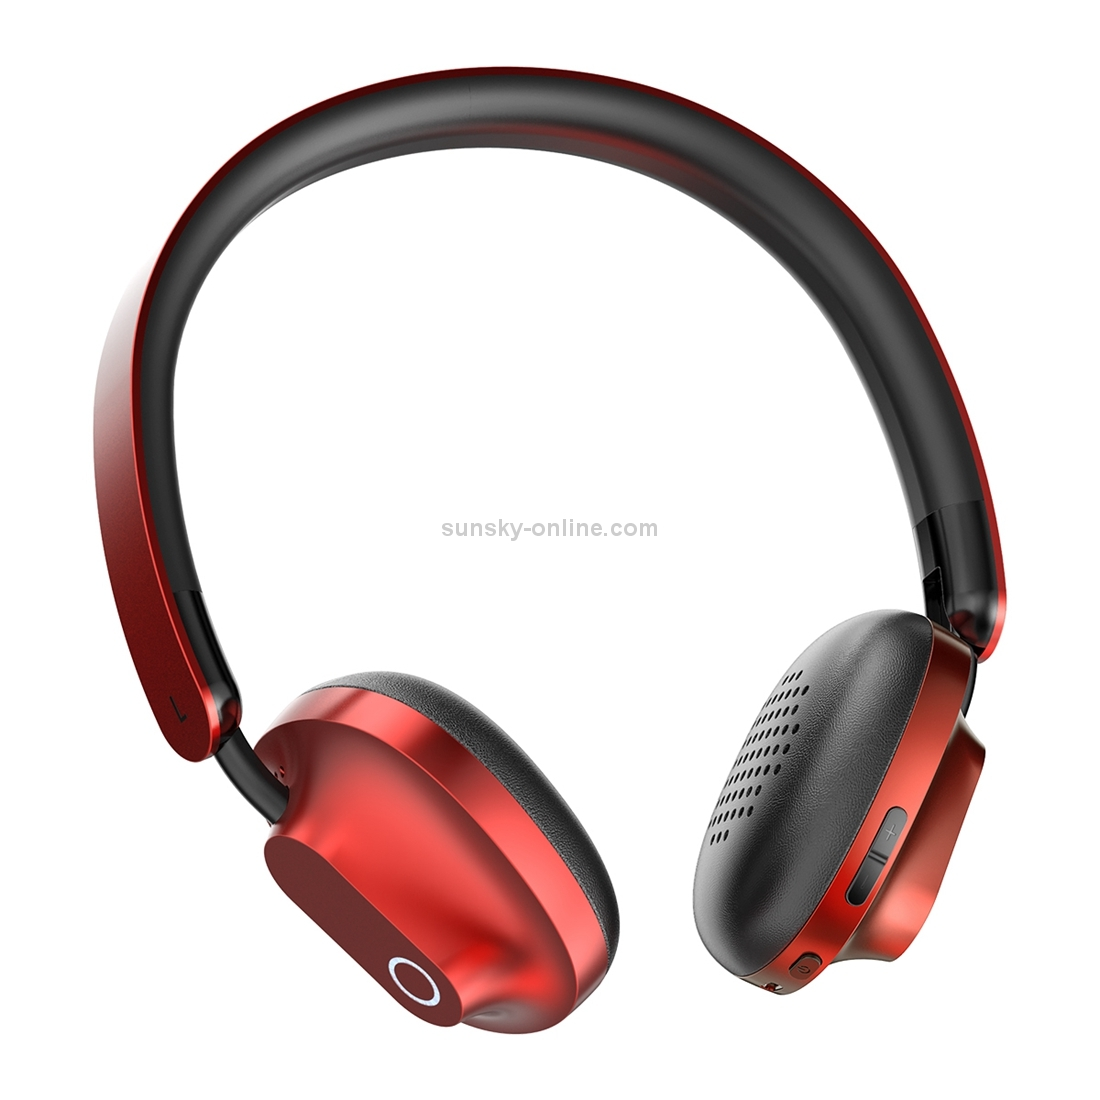 SUNSKY - Baseus Encok D01 Headband Bluetooth / wired